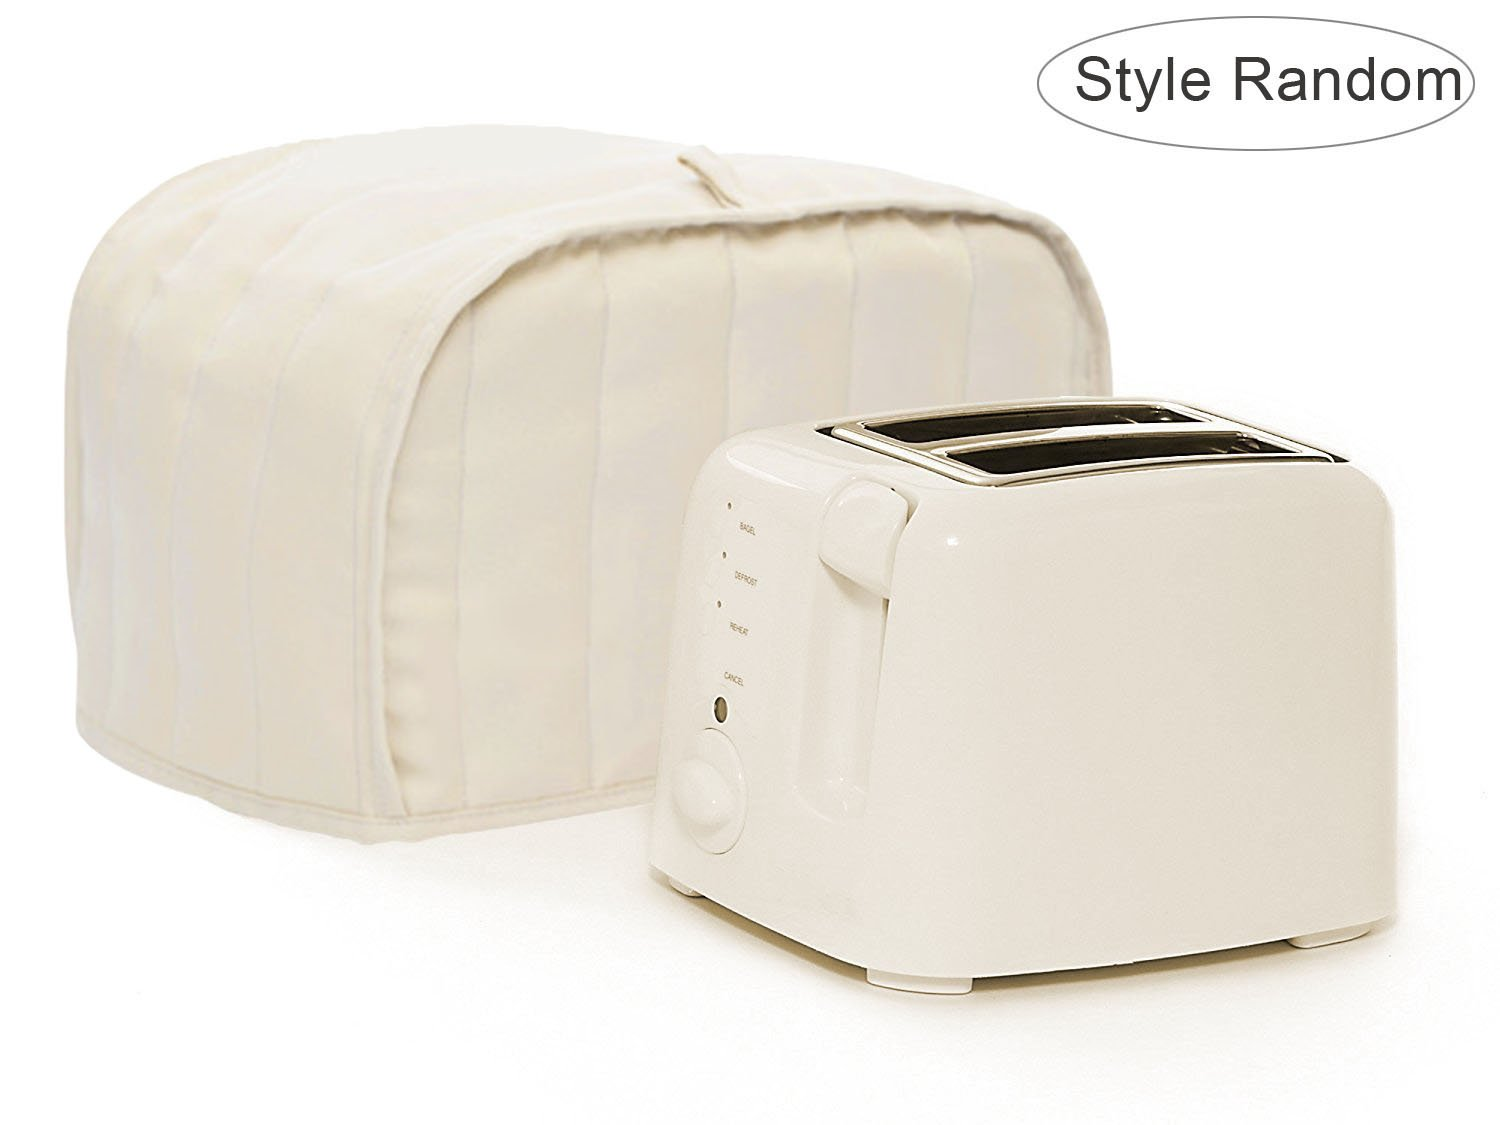 Toaster Dust Cover,Liangxiang Kitchen Toaster Cover Appliance 2 Slice 11W x 8D x 8H (Beige) - Style Random